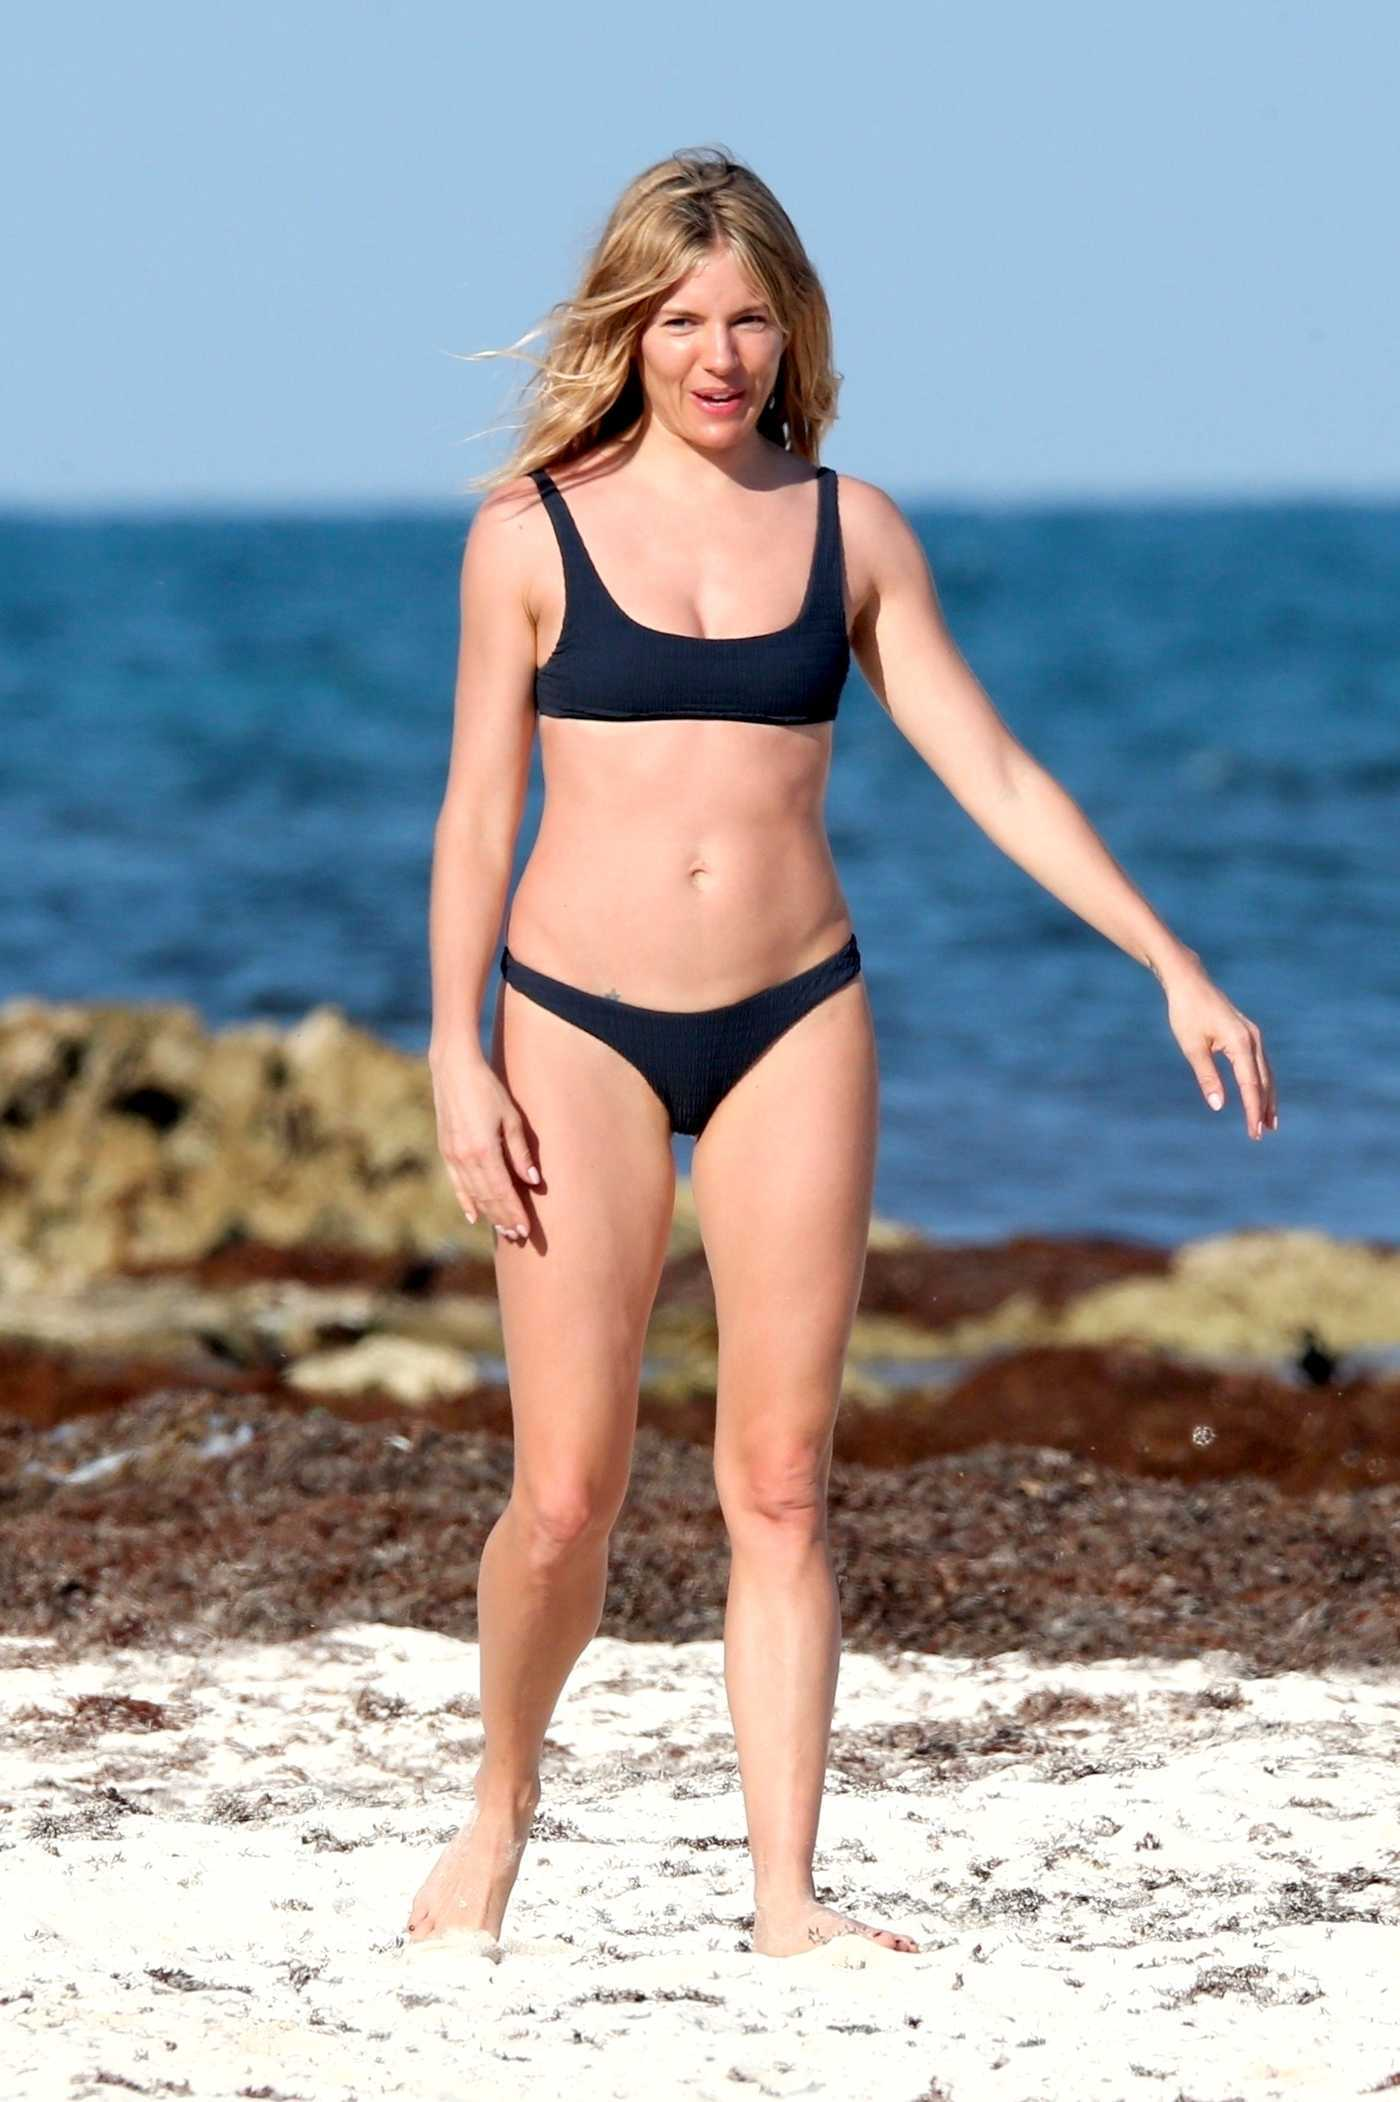 Sienna Miller in a Black Bikini on the Beach in Tulum, Mexico 03/20/2019